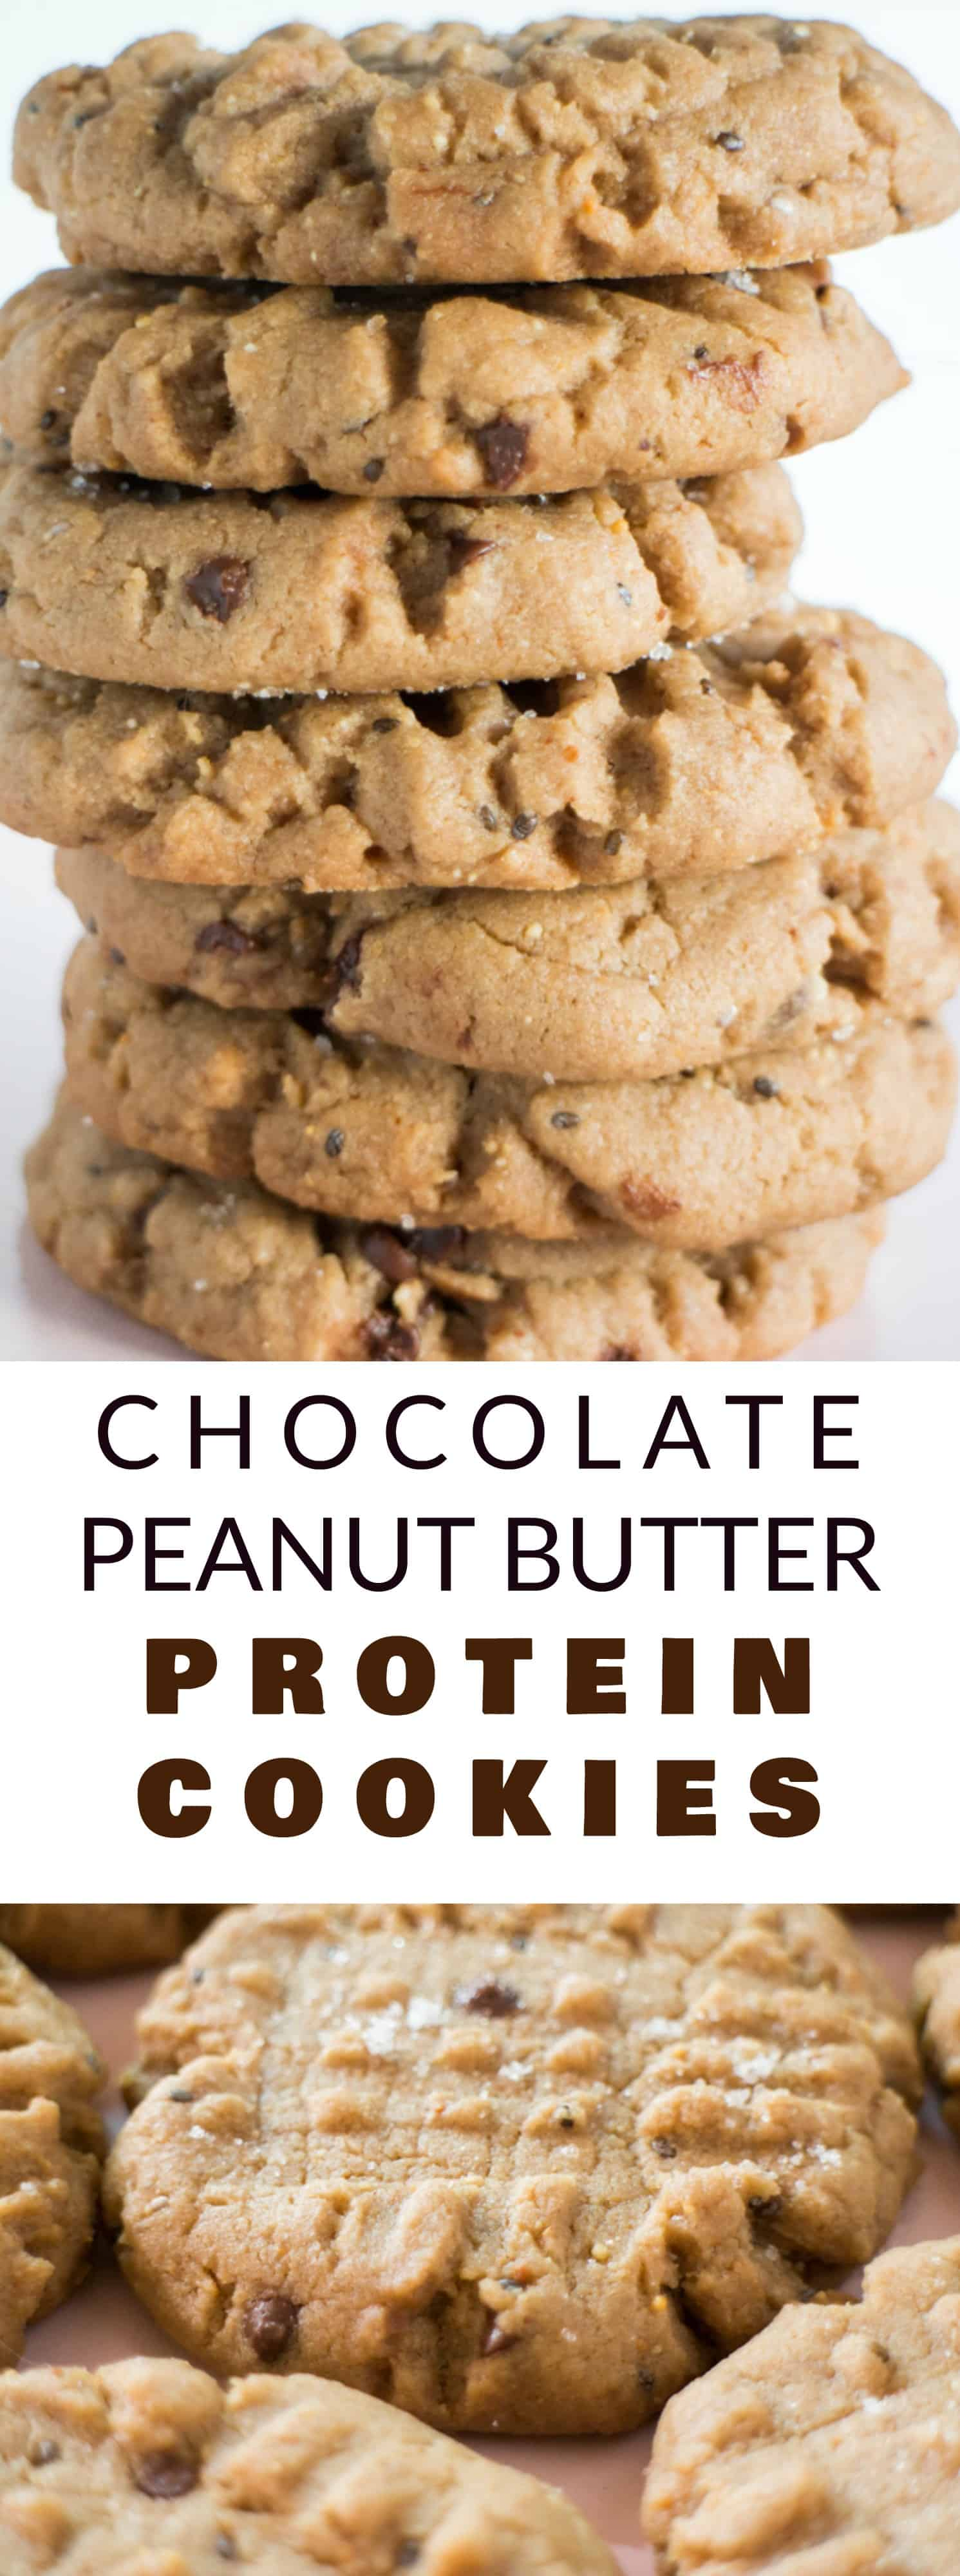 DOUBLE CHOCOLATE Peanut Butter Protein Cookies! This easy recipe makes 2 dozen delicious, healthy cookies made with chocolate protein powder. I love eating these chewy cookies for breakfast or a afternoon snack because they're a great source of iron, protein and fiber!